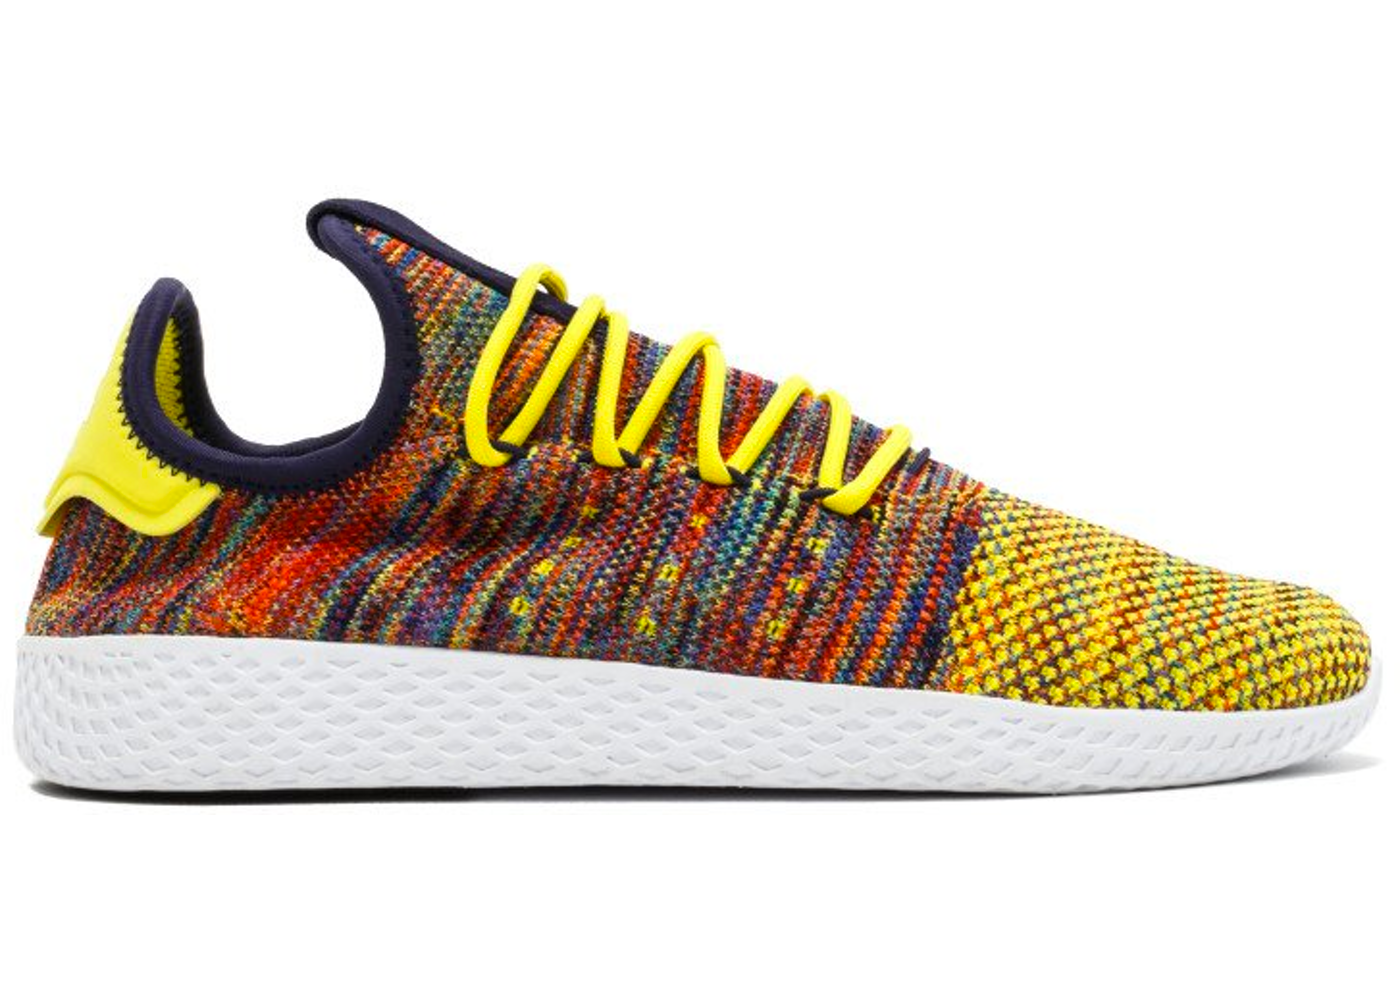 Pharrell Williams x adidas Tennis Hu Multi-Color